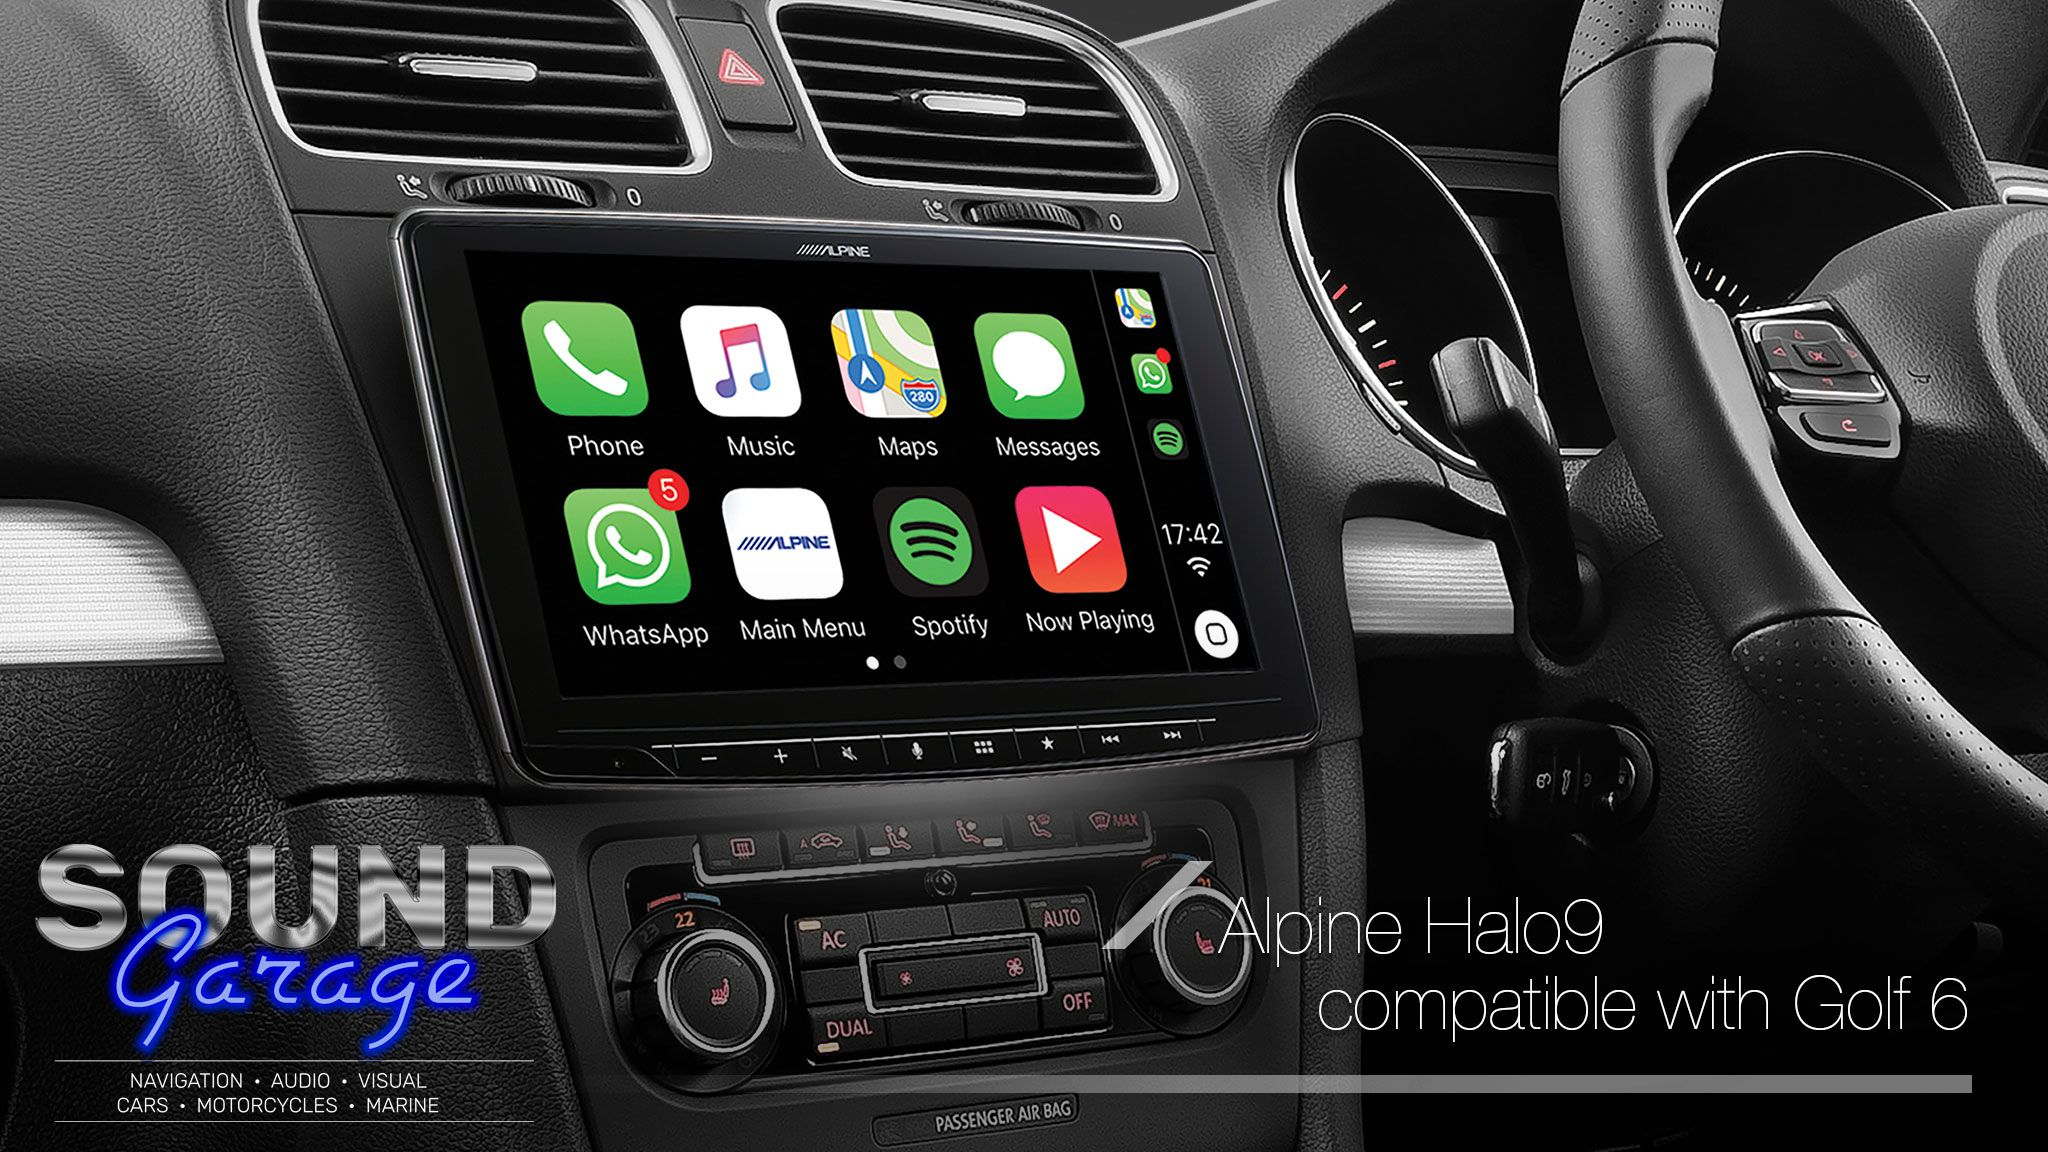 Alpine Halo9 Ilx F309e 9 Carplay Android Auto Digital Media Head